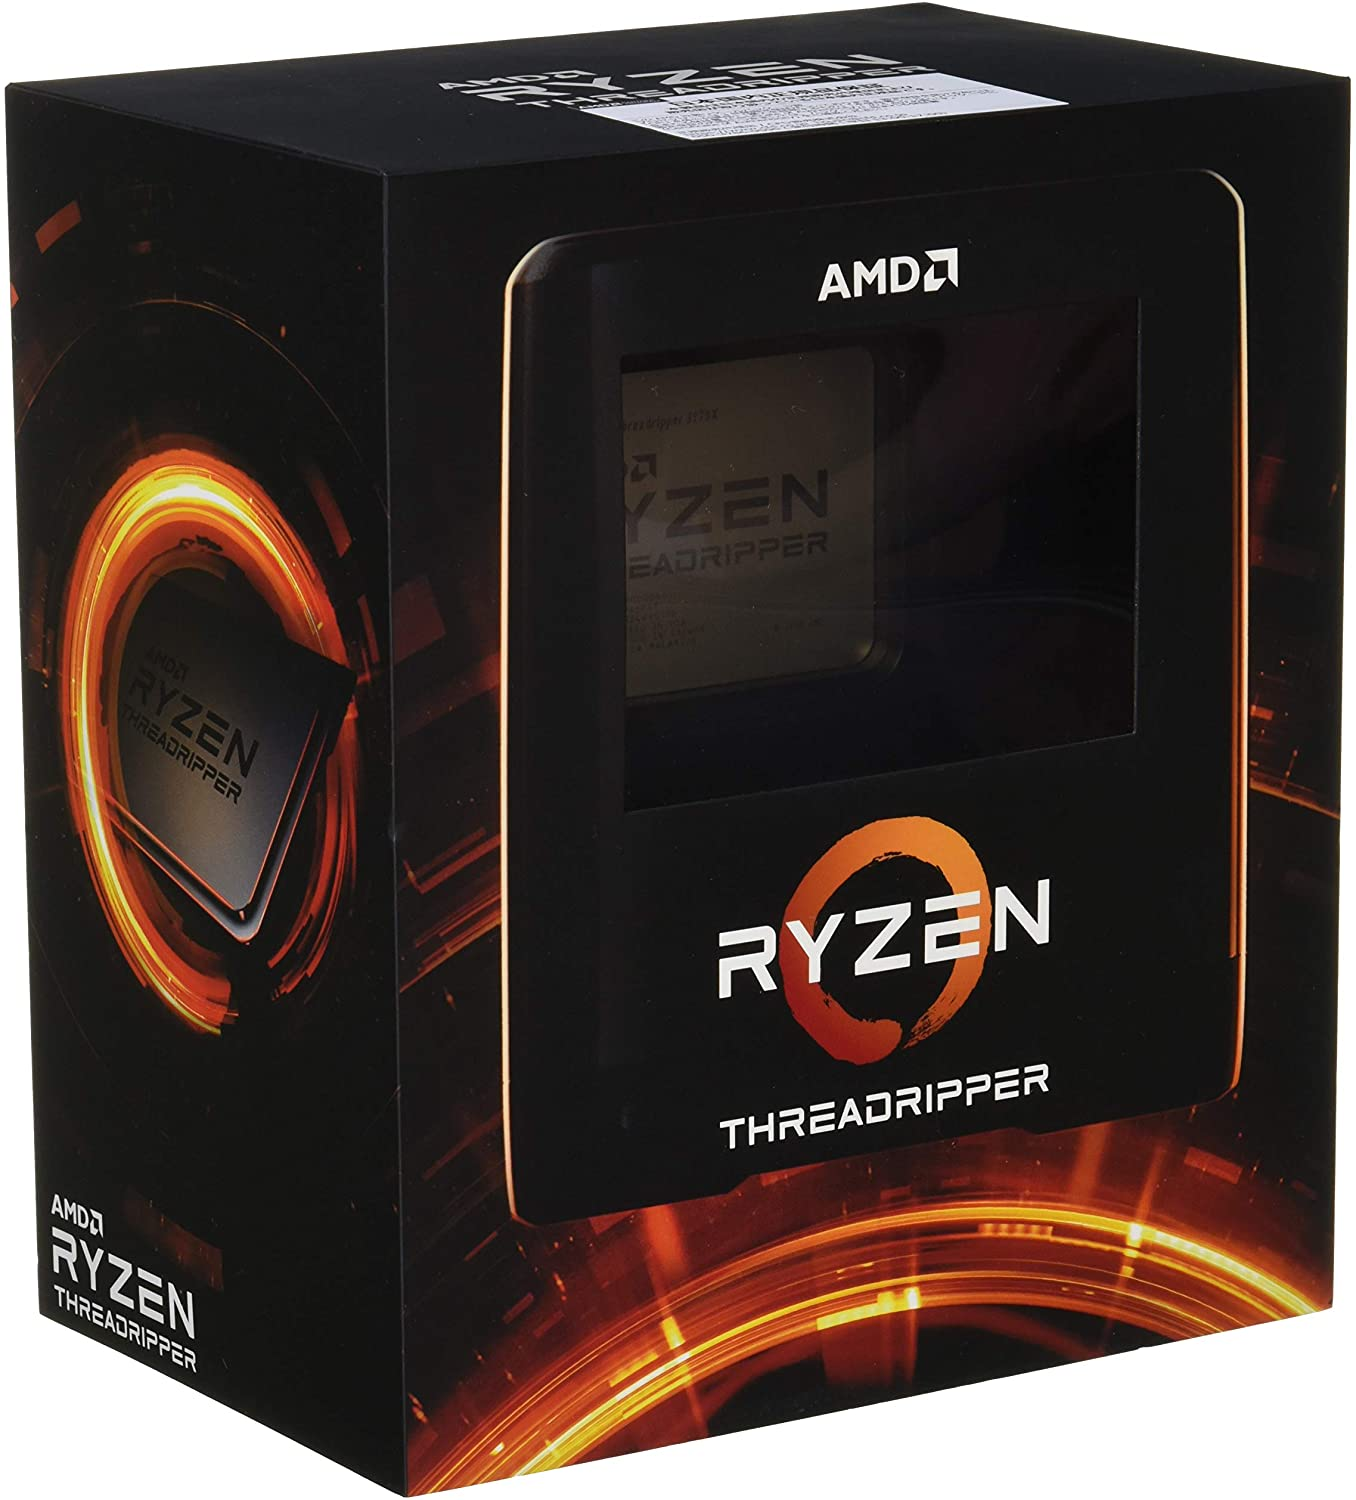 Amazon Com Amd Ryzen Threadripper 3970x 32 Core 64 Thread Unlocked Desktop Processor Without Cooler Computers Accessories